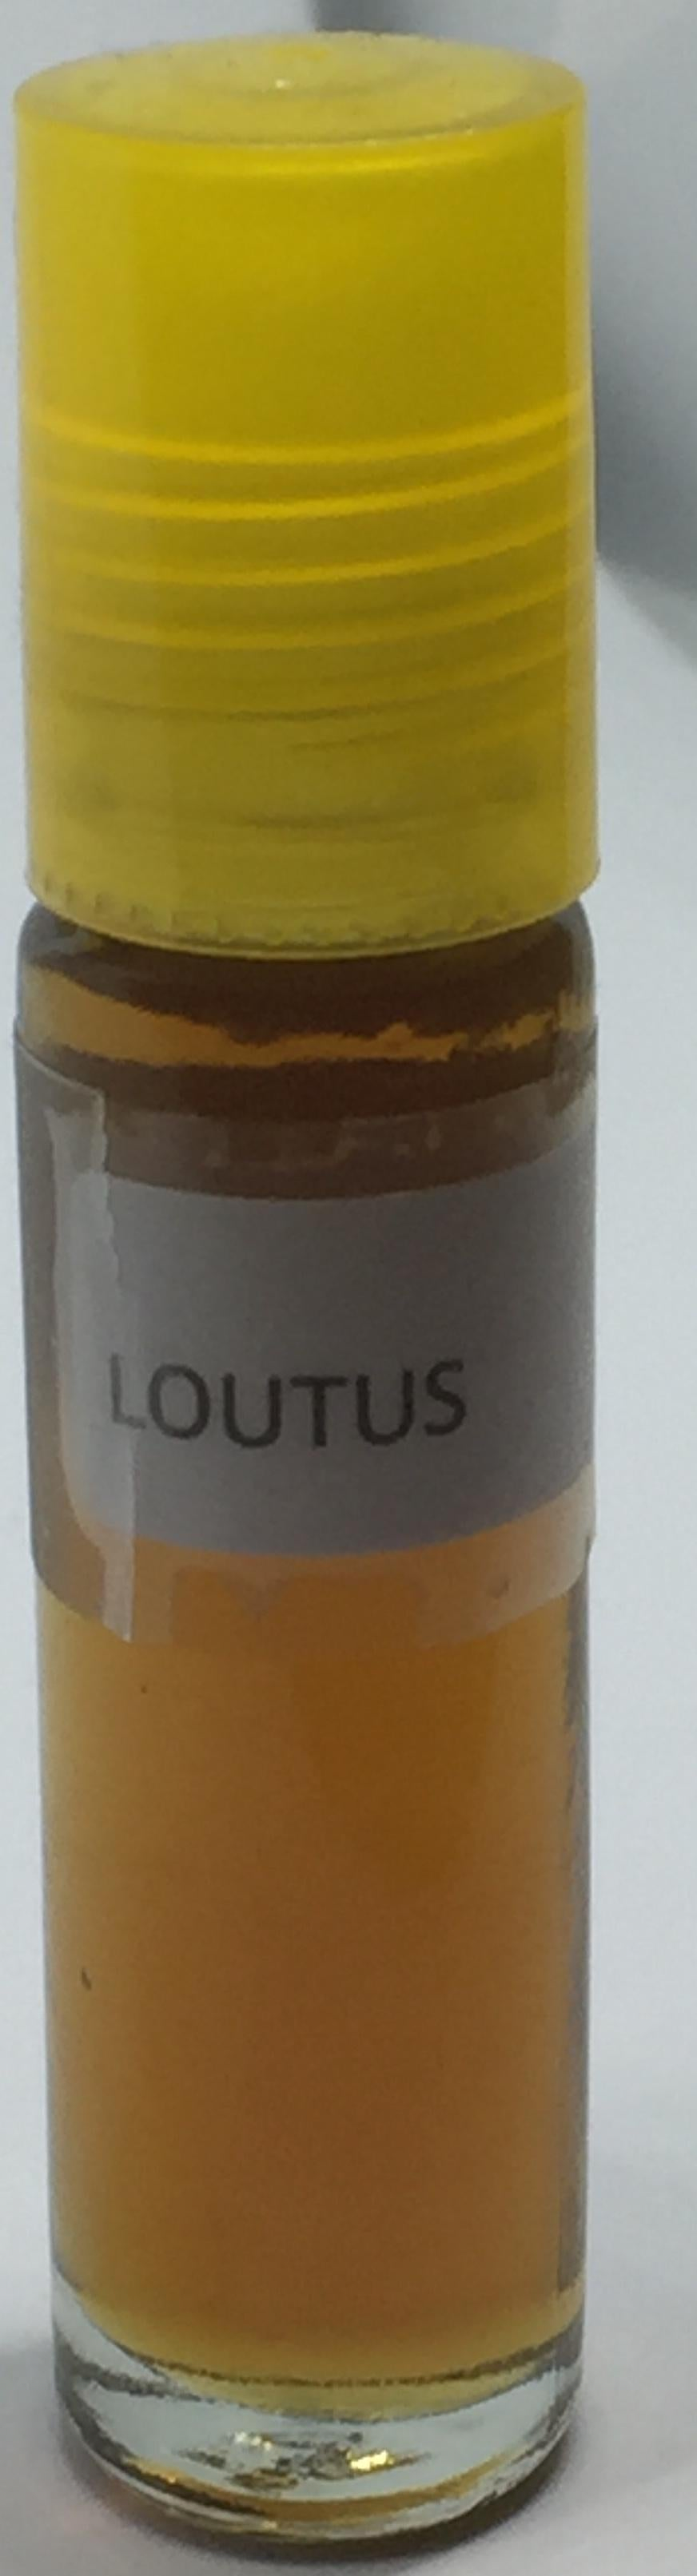 Lotus Oil: Fragrance(Perfume)Body Oil Unisex